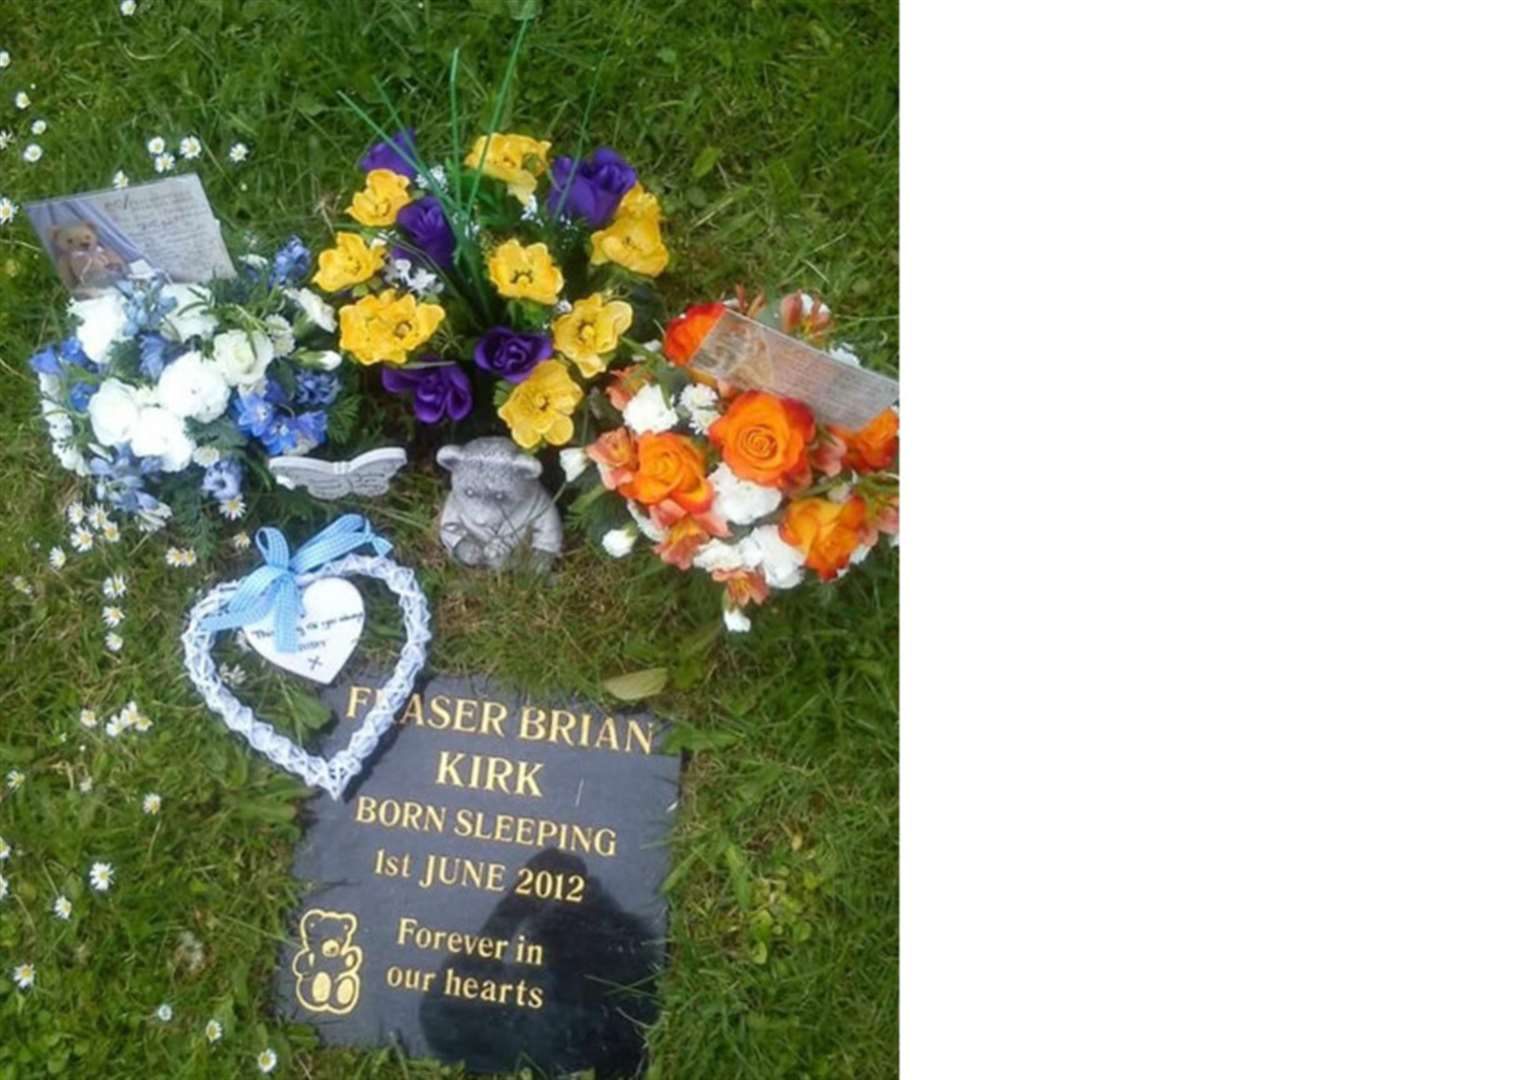 Stone teddy bear from stillborn baby's grave is among items stolen from Great Gonerby churchyard